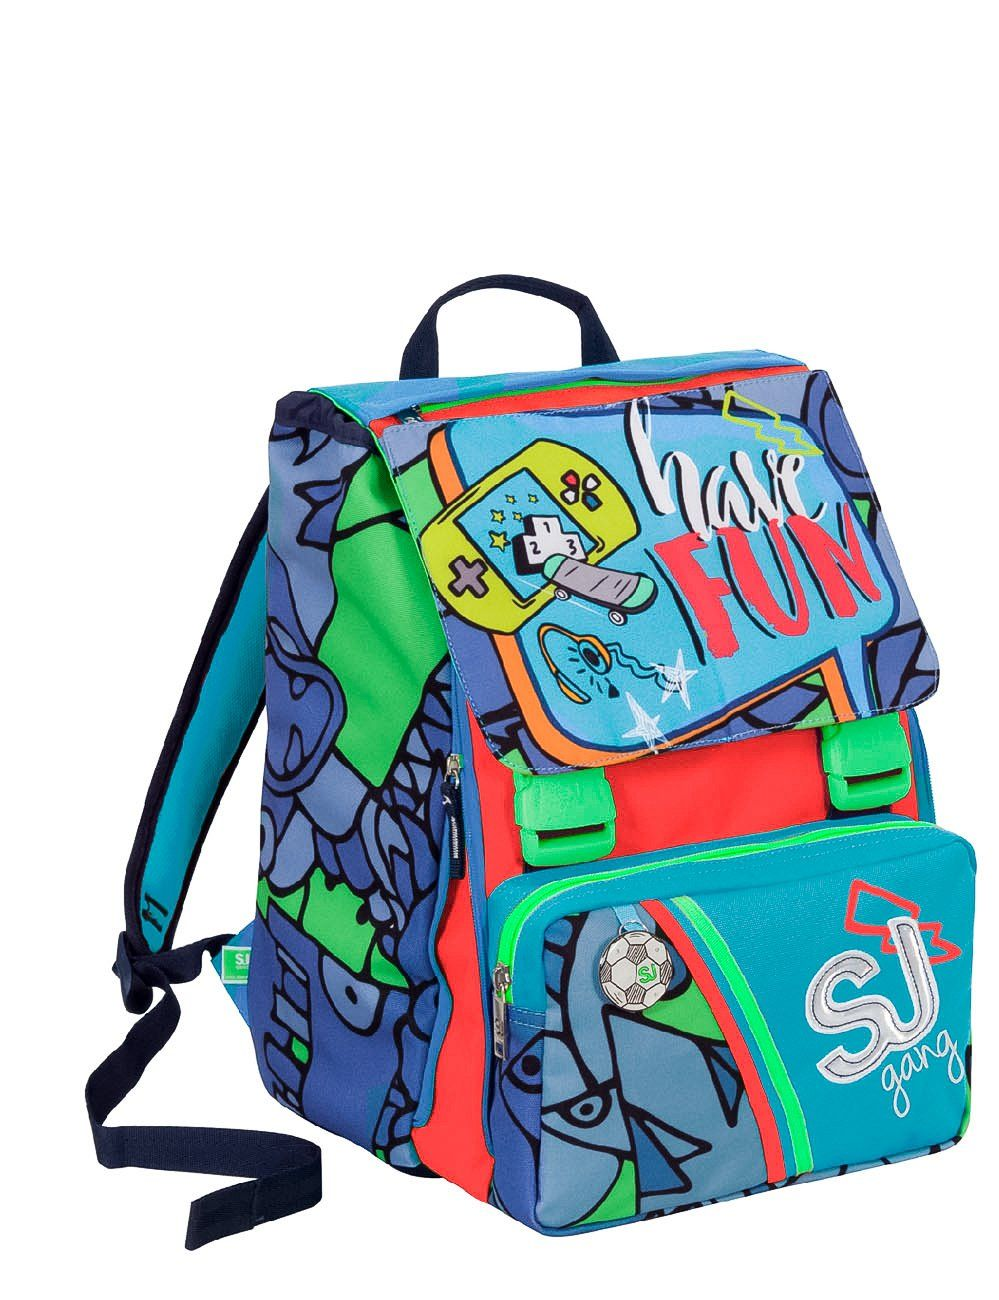 5061c61f9b Doubling backpack SEVEN - SJ BOY - Expandable - FLIP SYSTEM - Blue Red - 28